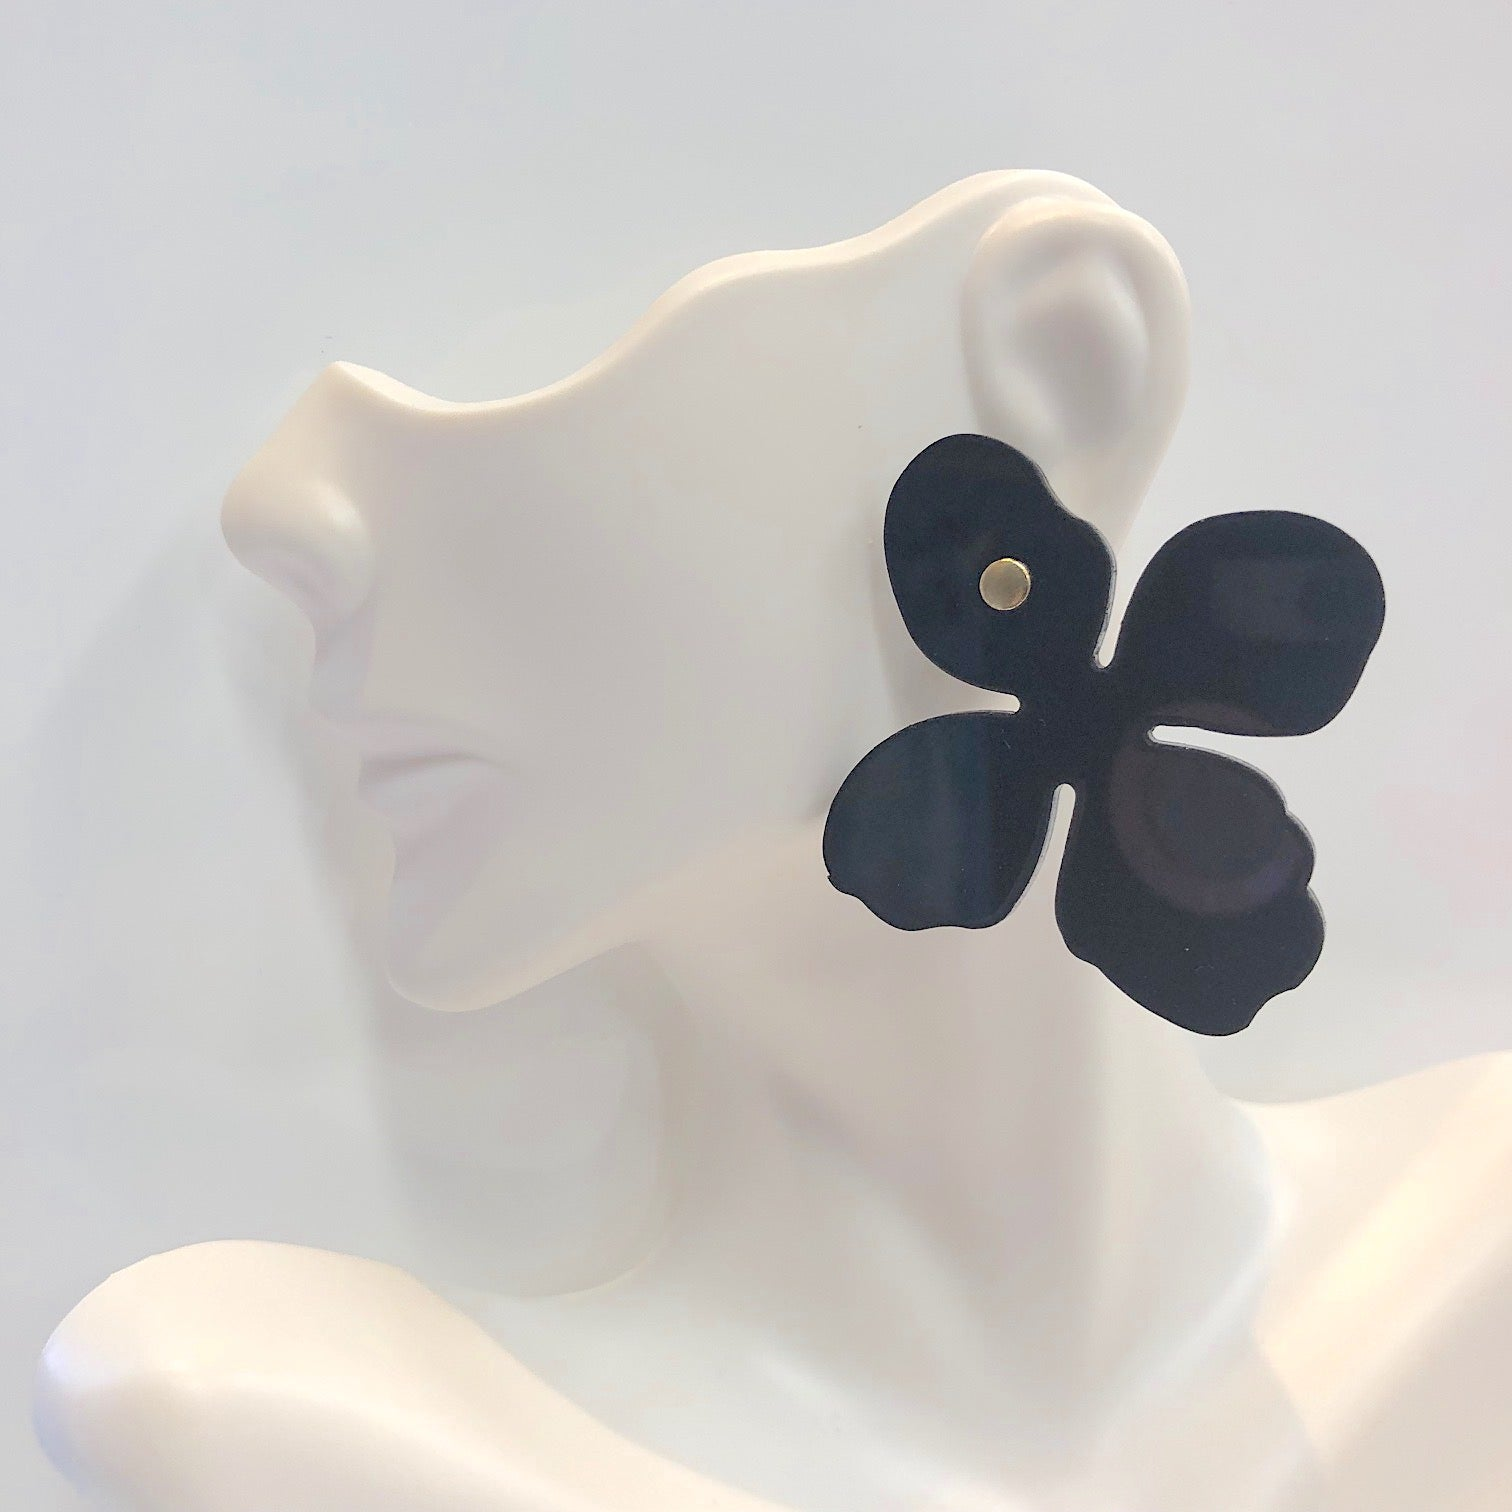 Lisi Lerch Maggie Acrylic Earring Black